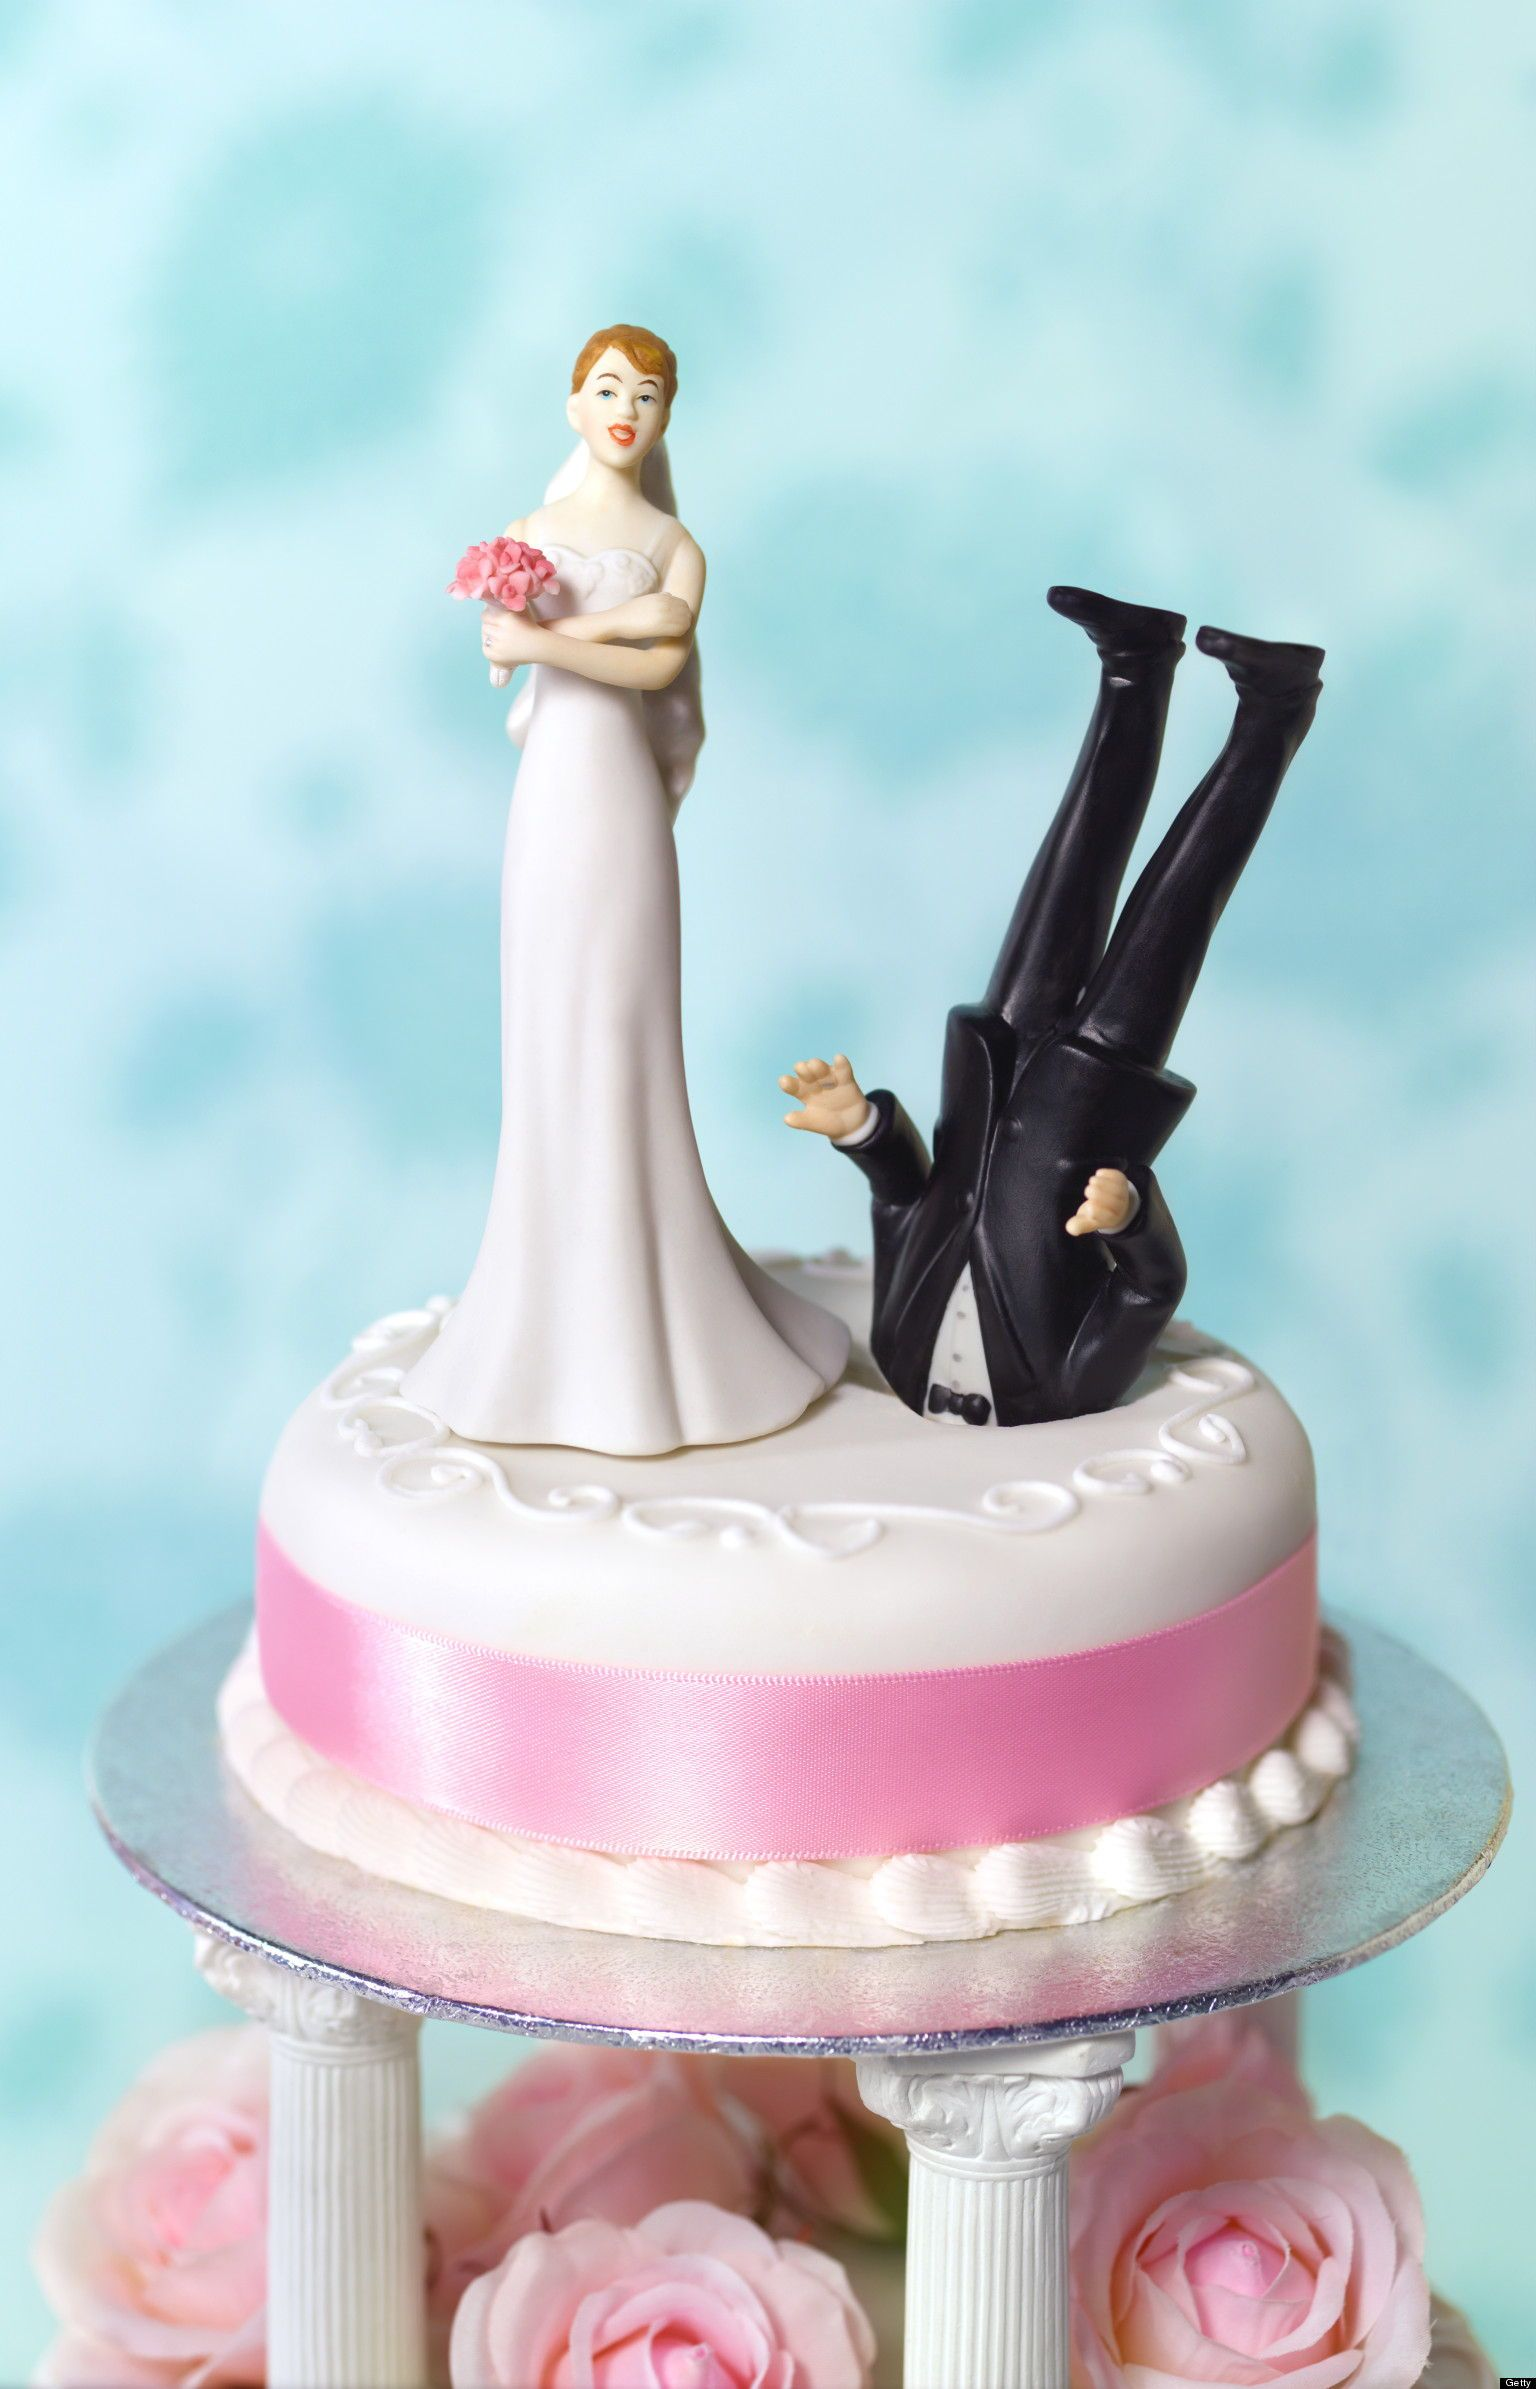 15 Funny Wedding Cake Toppers To Make Your Guests Laugh Weddinginclude Funny Wedding Cakes Funny Wedding Cake Toppers Funny Cake Toppers